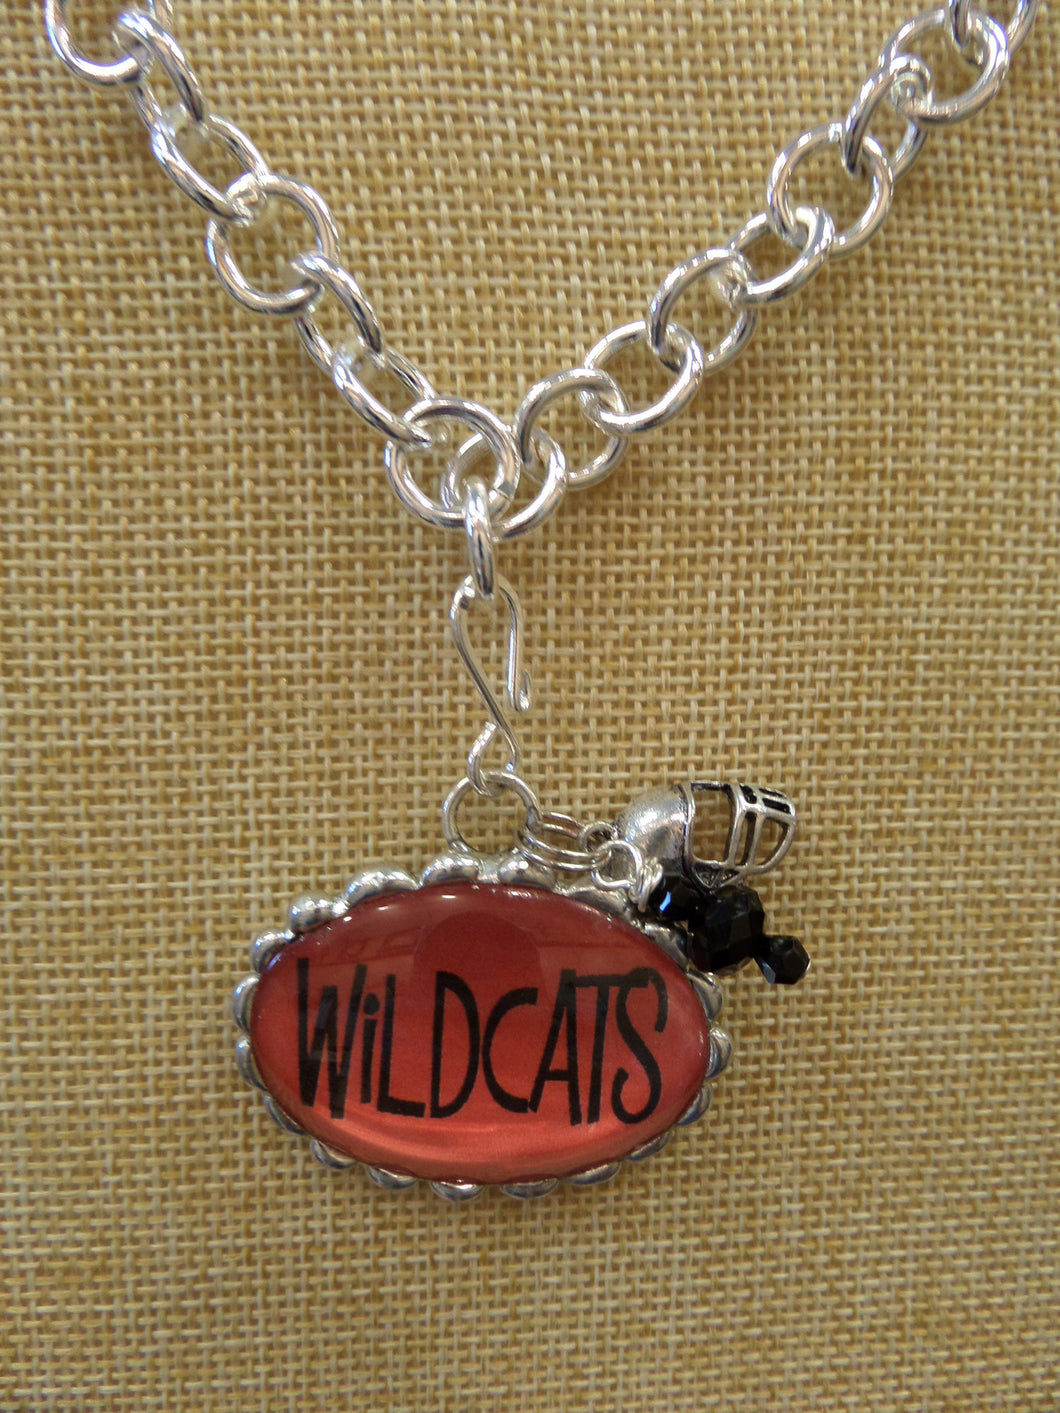 ADO | Hometown Pride Willdcats Charm Necklace - All Decd Out